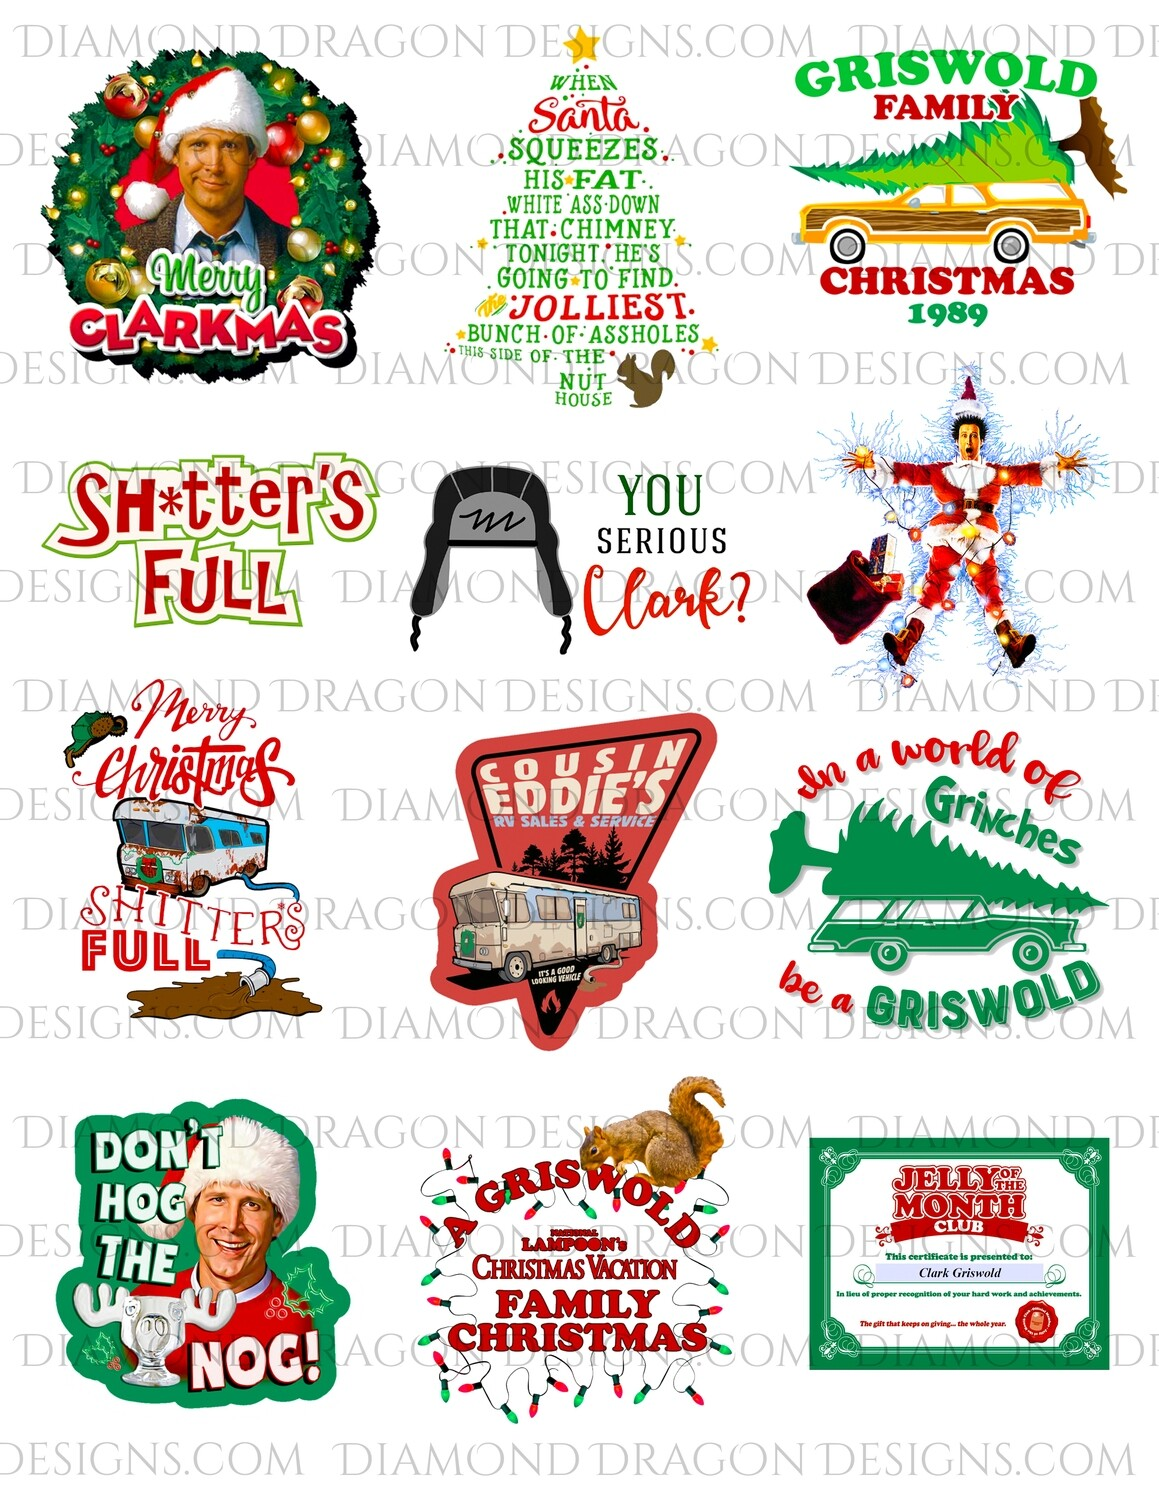 Christmas - National Lampoon's Christmas Vacation, Movie, Collage 1, Full Page, Waterslides